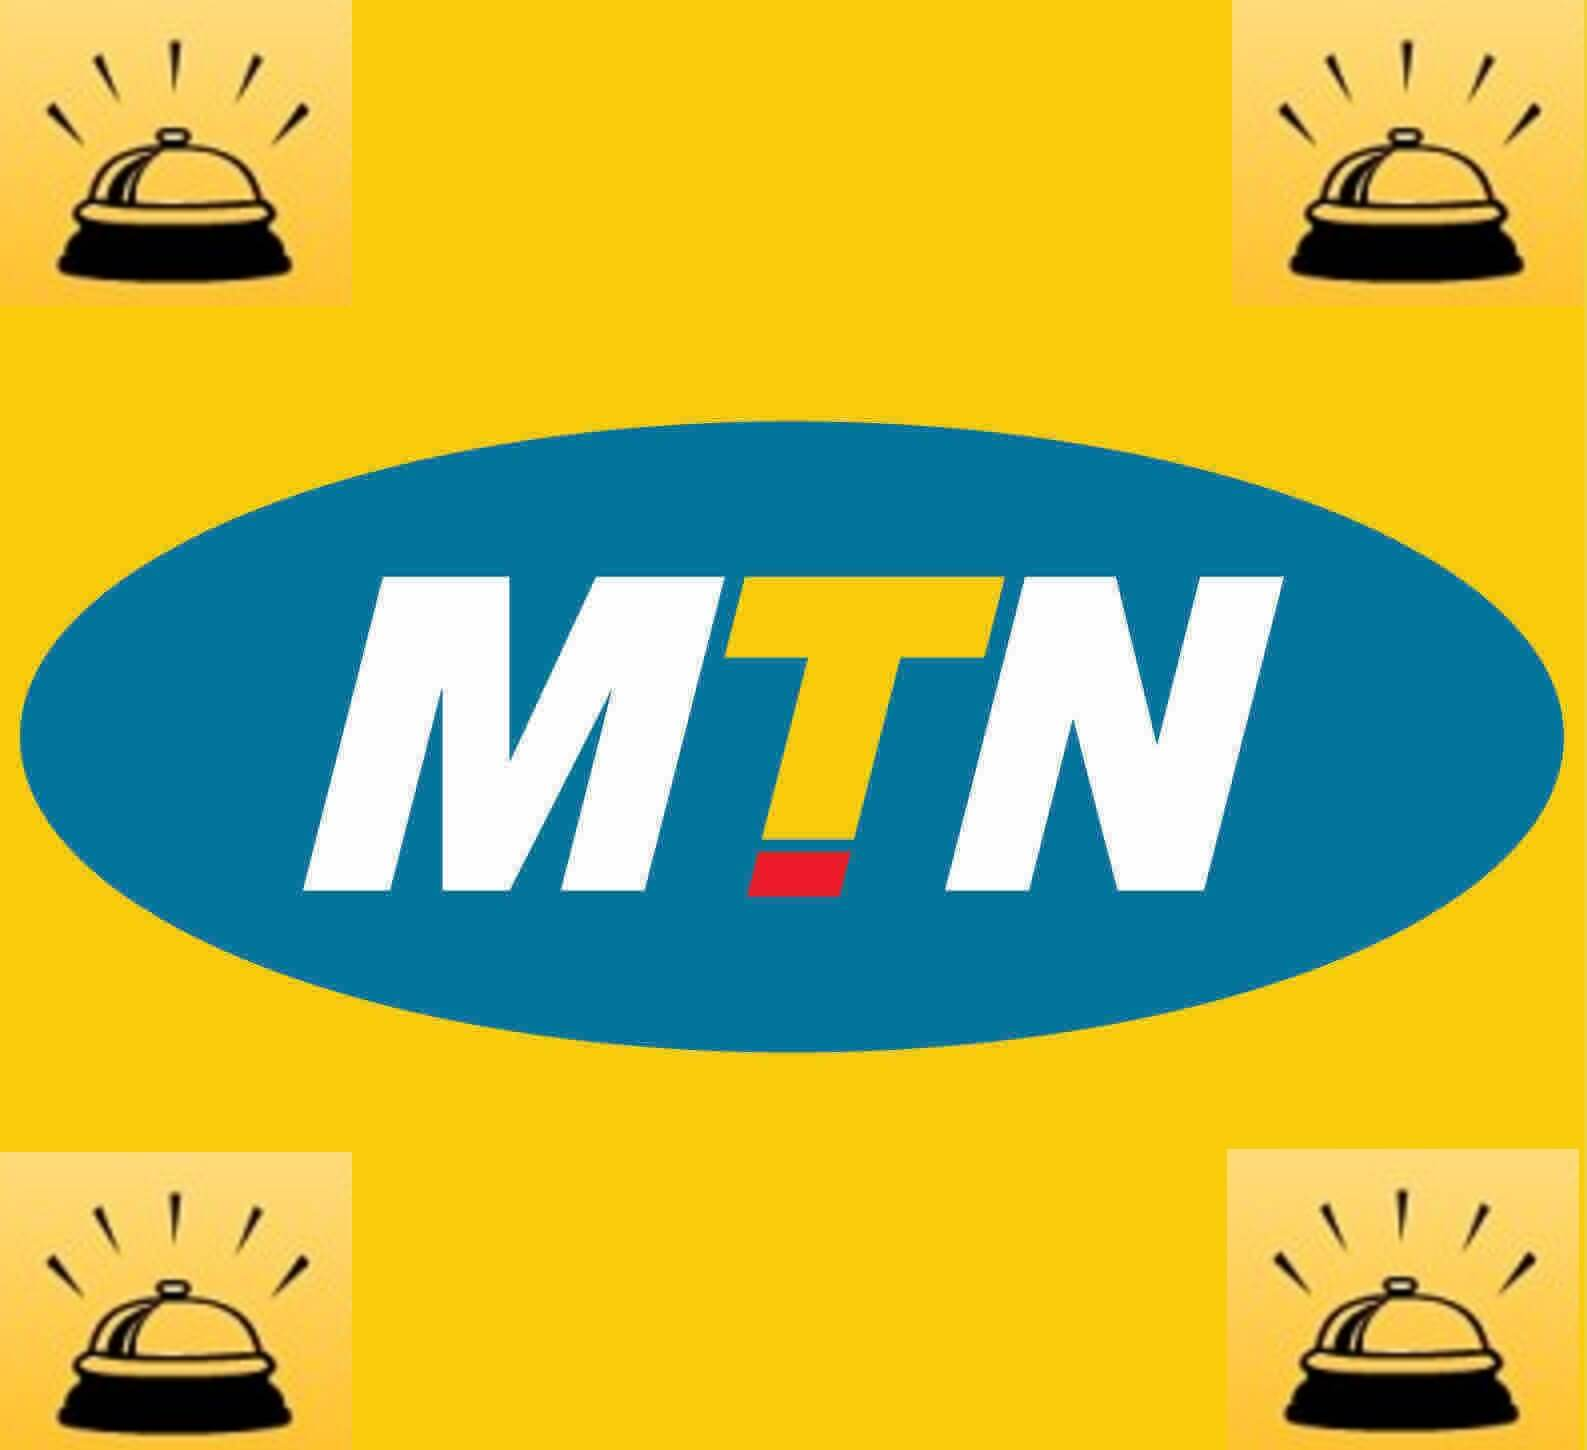 MTN disturbing and intrusive spam sms and calls needs to be stopped